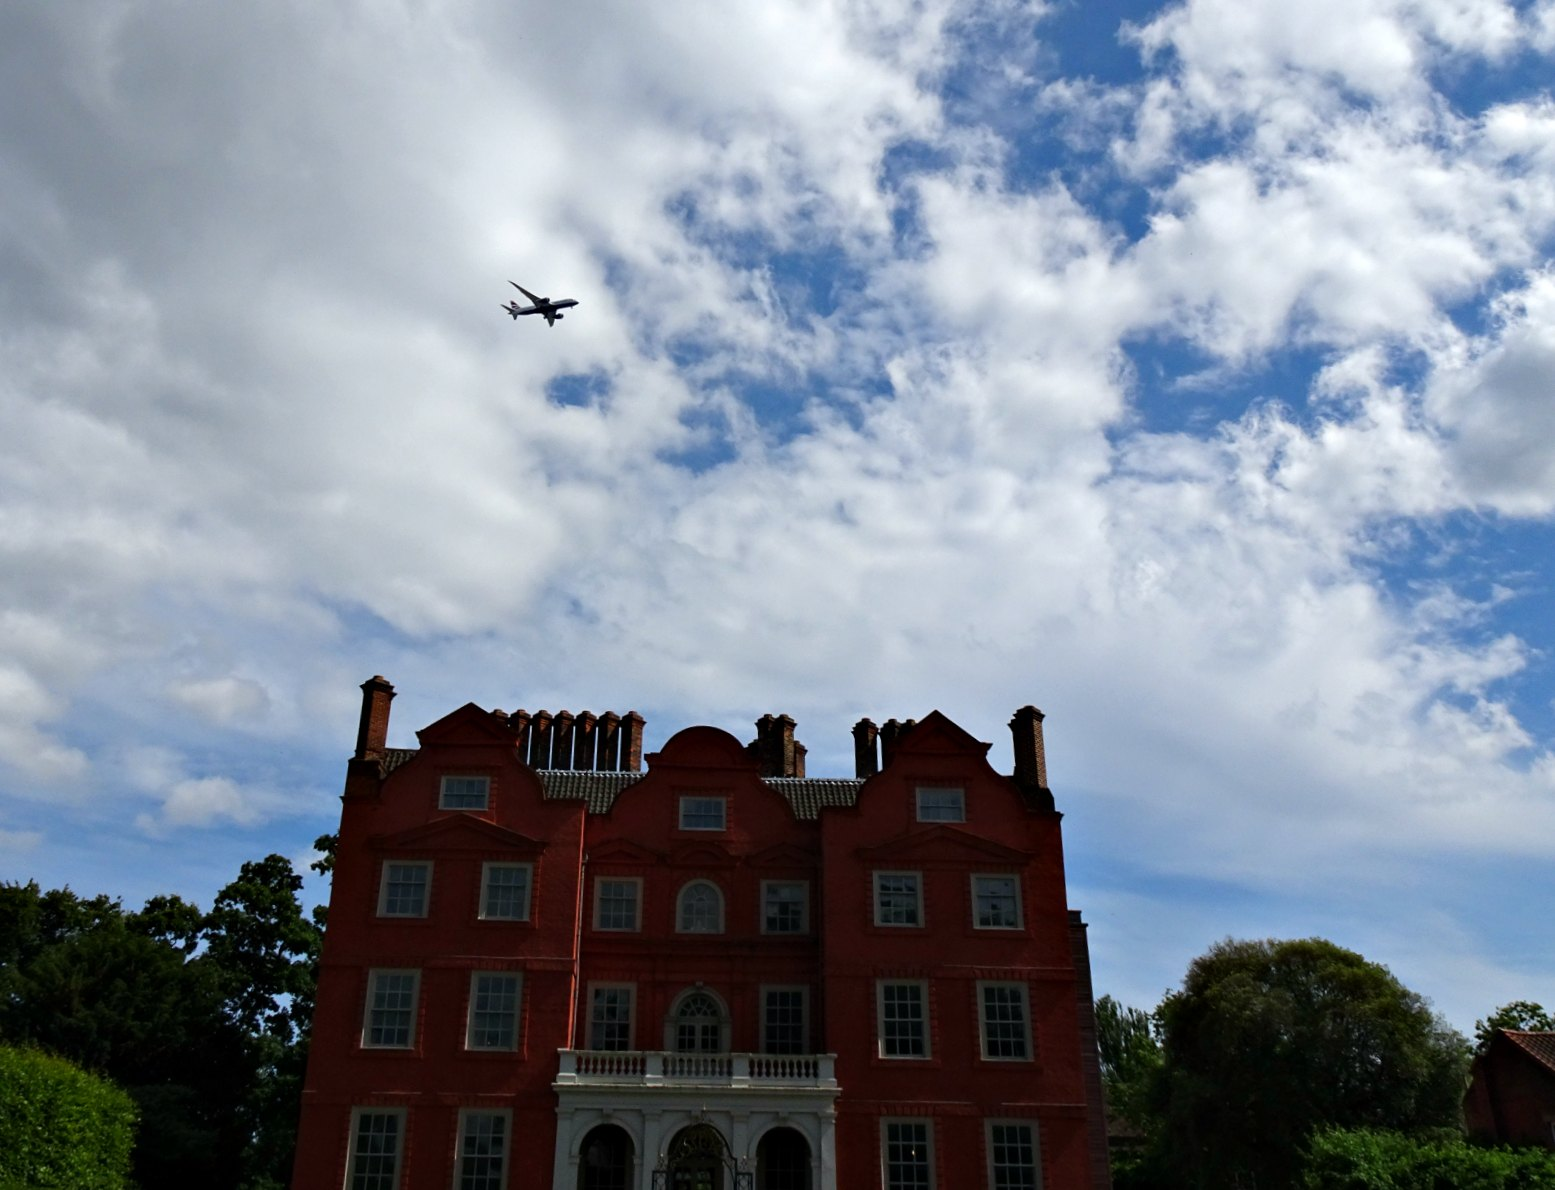 Kew Palace on the flight path to Heathrow